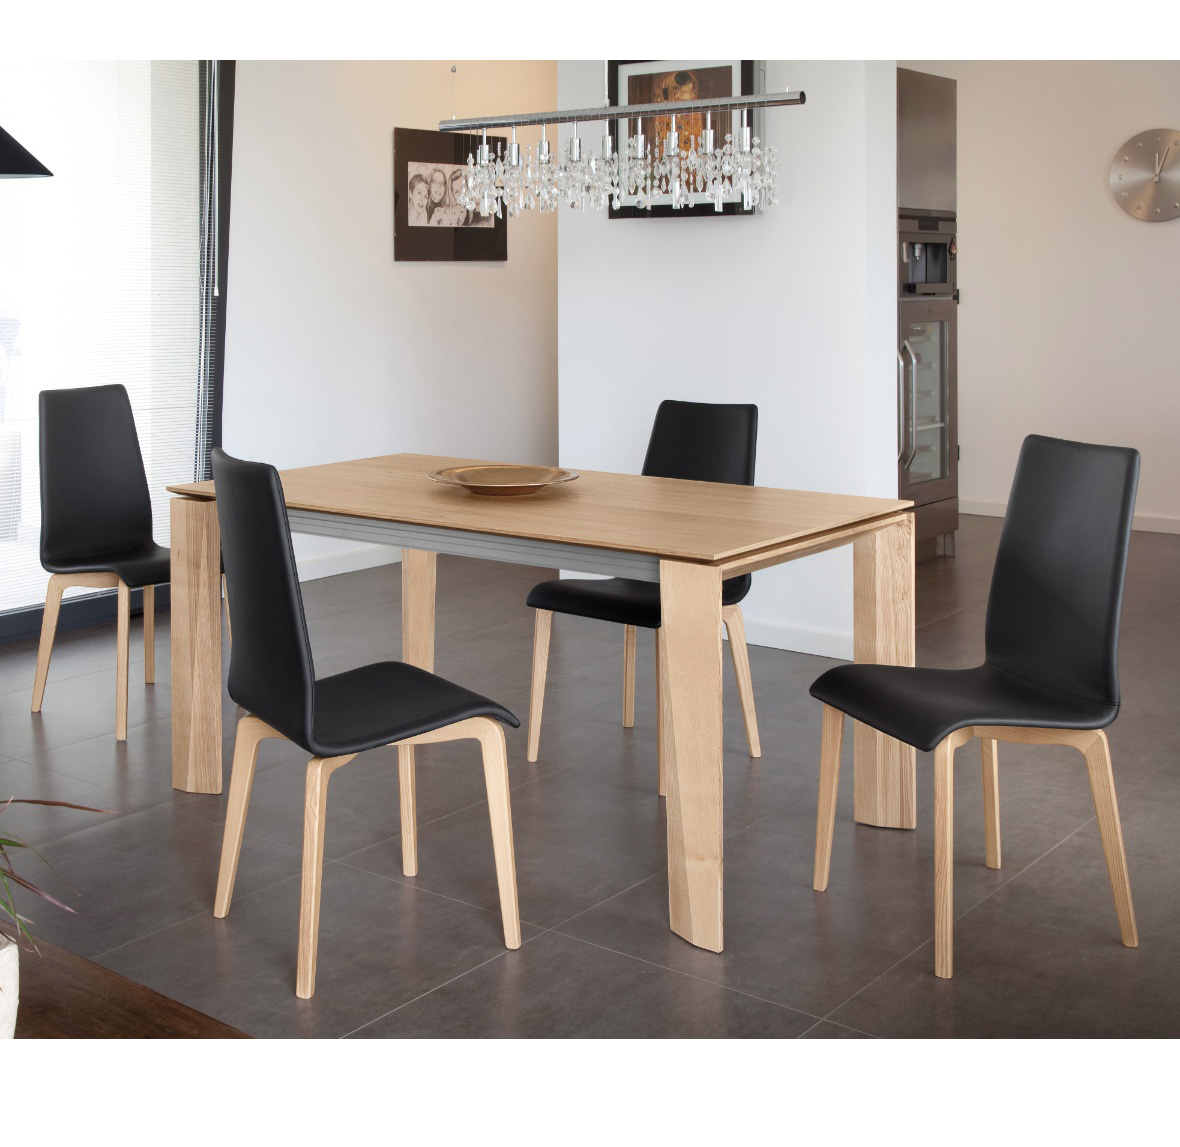 Estillo 182 Extendable Dining Table-32081